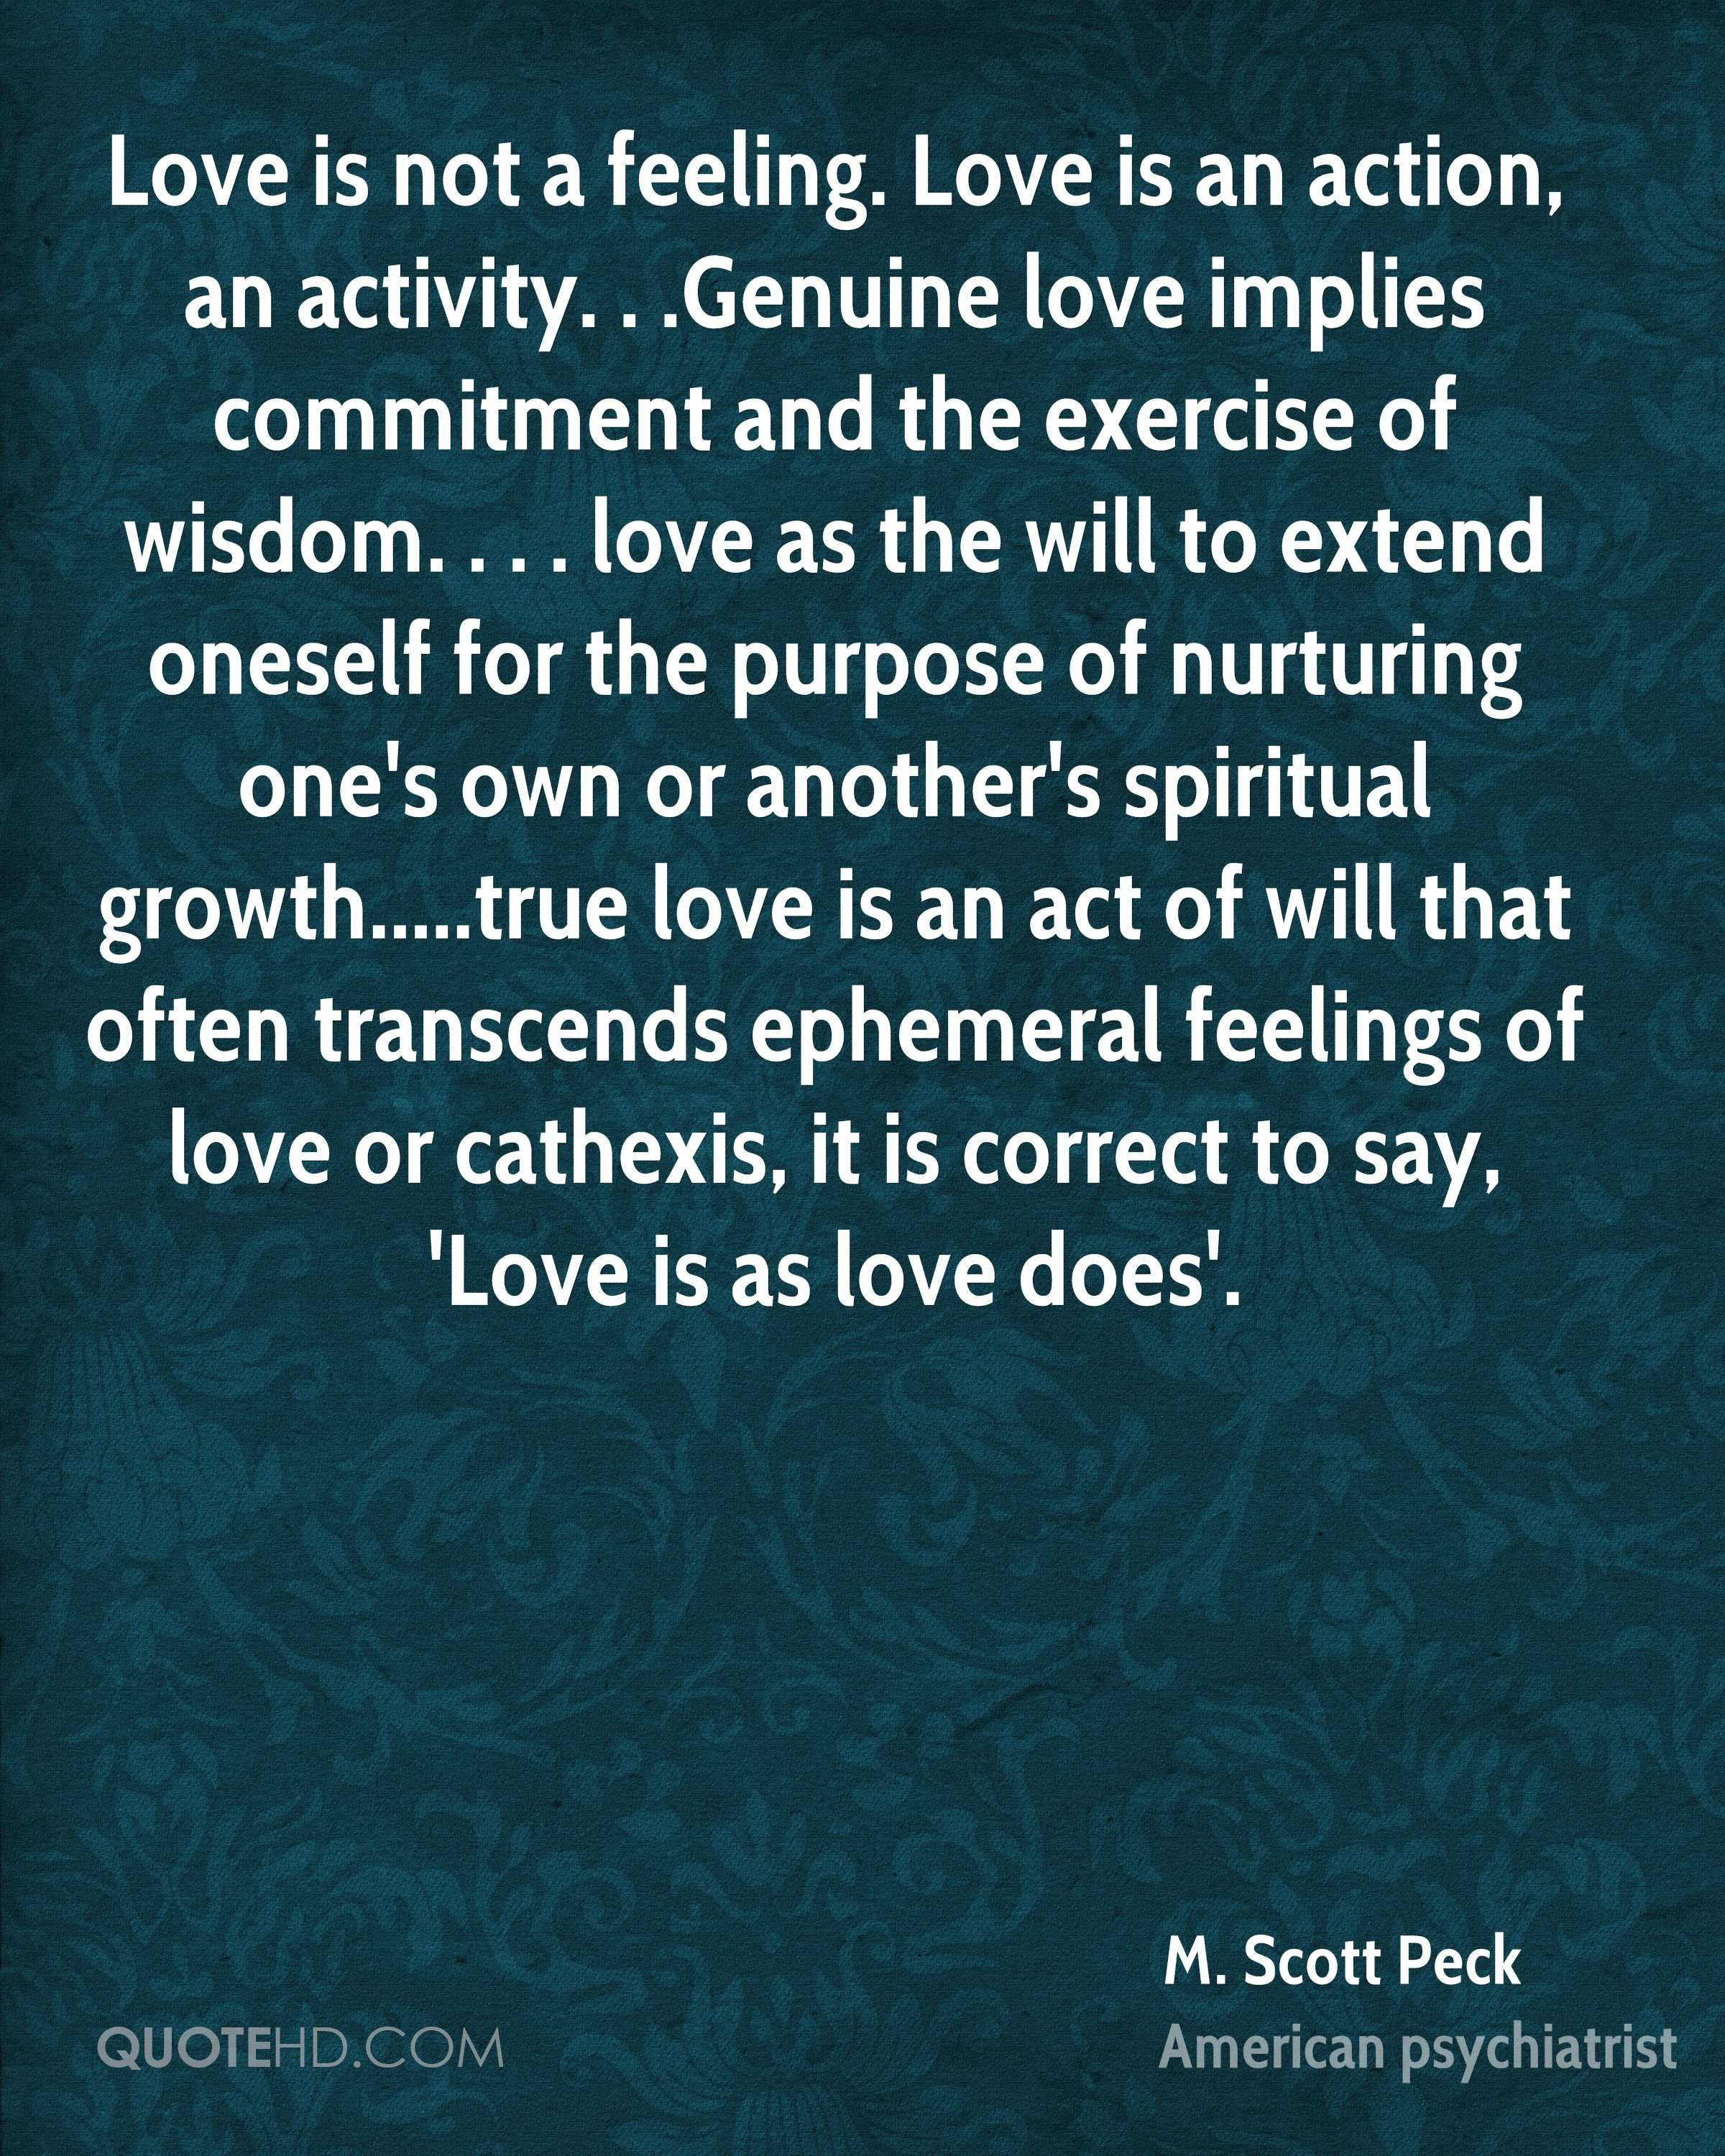 Love feeling quotes love feeling quotes with - Scott Peck Quotes Love Is Not A Feeling Love Is An Action An Activity Genuine Love Implies Commitment And The